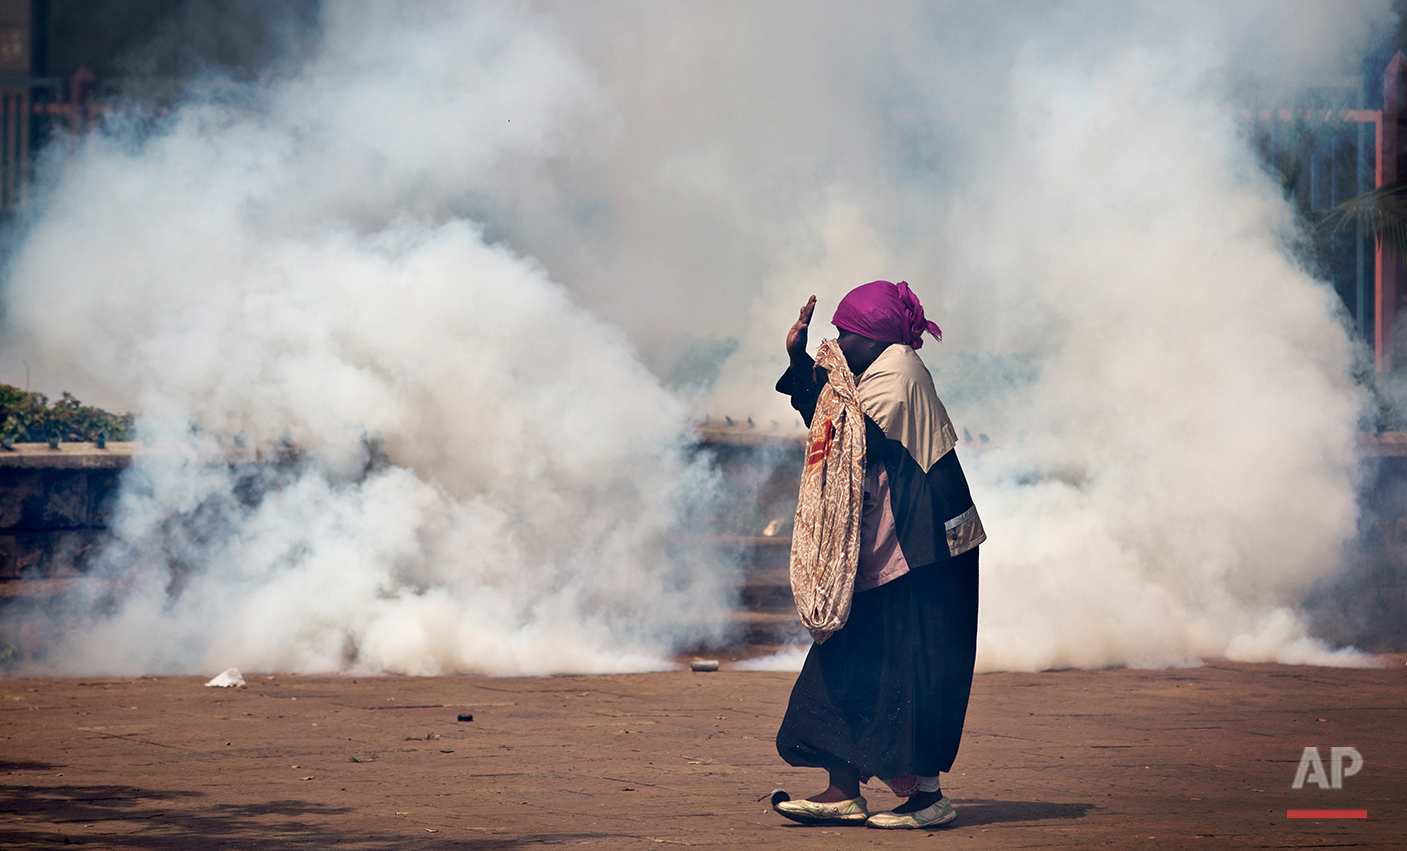 An elderly woman caught up in the clashes holds her hands in the air as a riot policeman approach amidst clouds of tear gas, during a protest in downtown Nairobi, Kenya Monday, May 16, 2016. Kenyan police have tear-gassed and beaten opposition supporters during a protest demanding the disbandment of the electoral authority over alleged bias and corruption. (AP Photo/Ben Curtis)